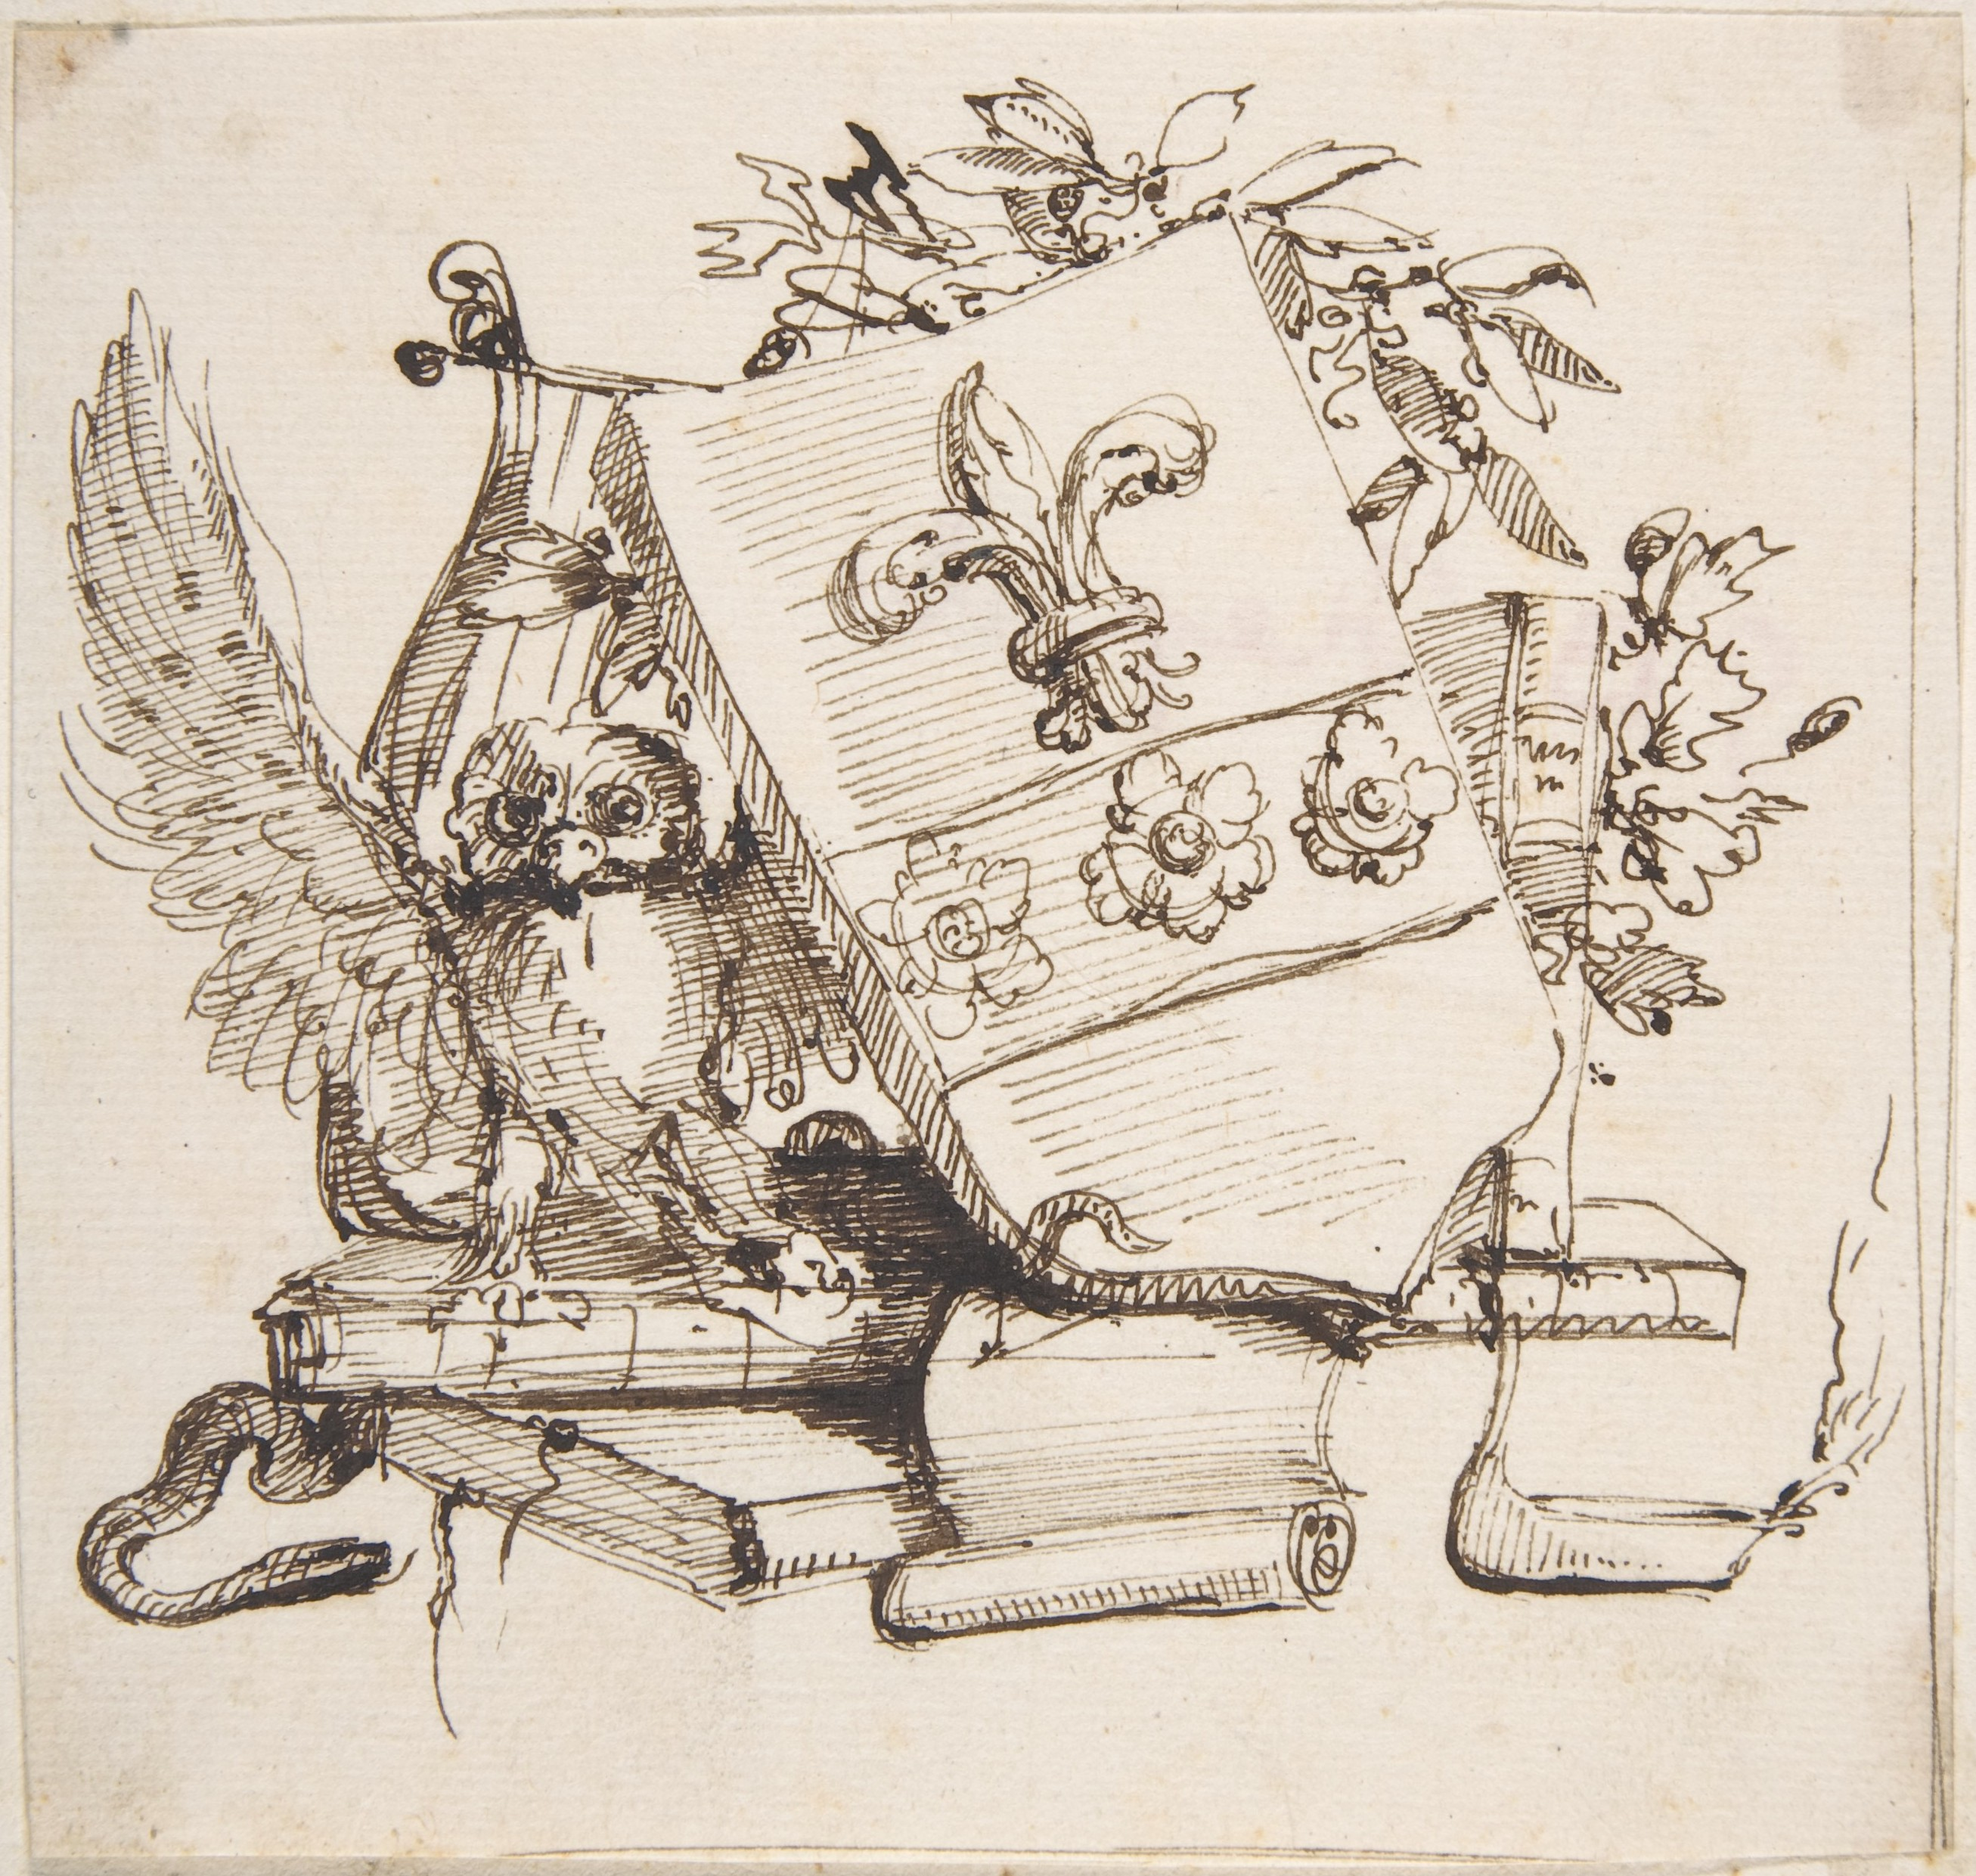 2613x2481 Filedrawing Of A Decorated Coat Of Arms Surrounded By Books, Owl